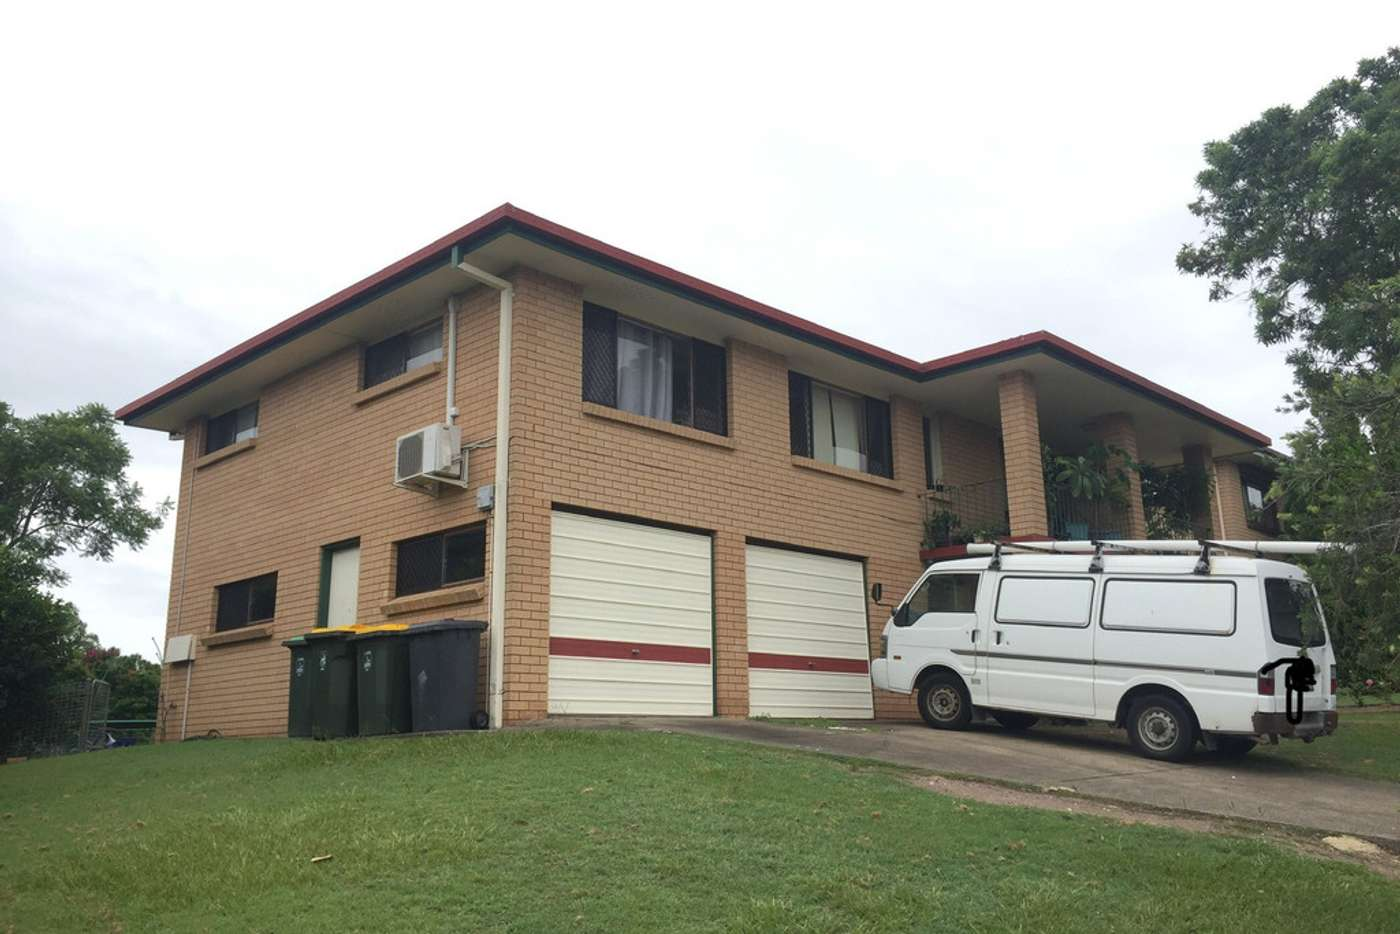 Main view of Homely house listing, 27 Mistral Street, Jamboree Heights QLD 4074